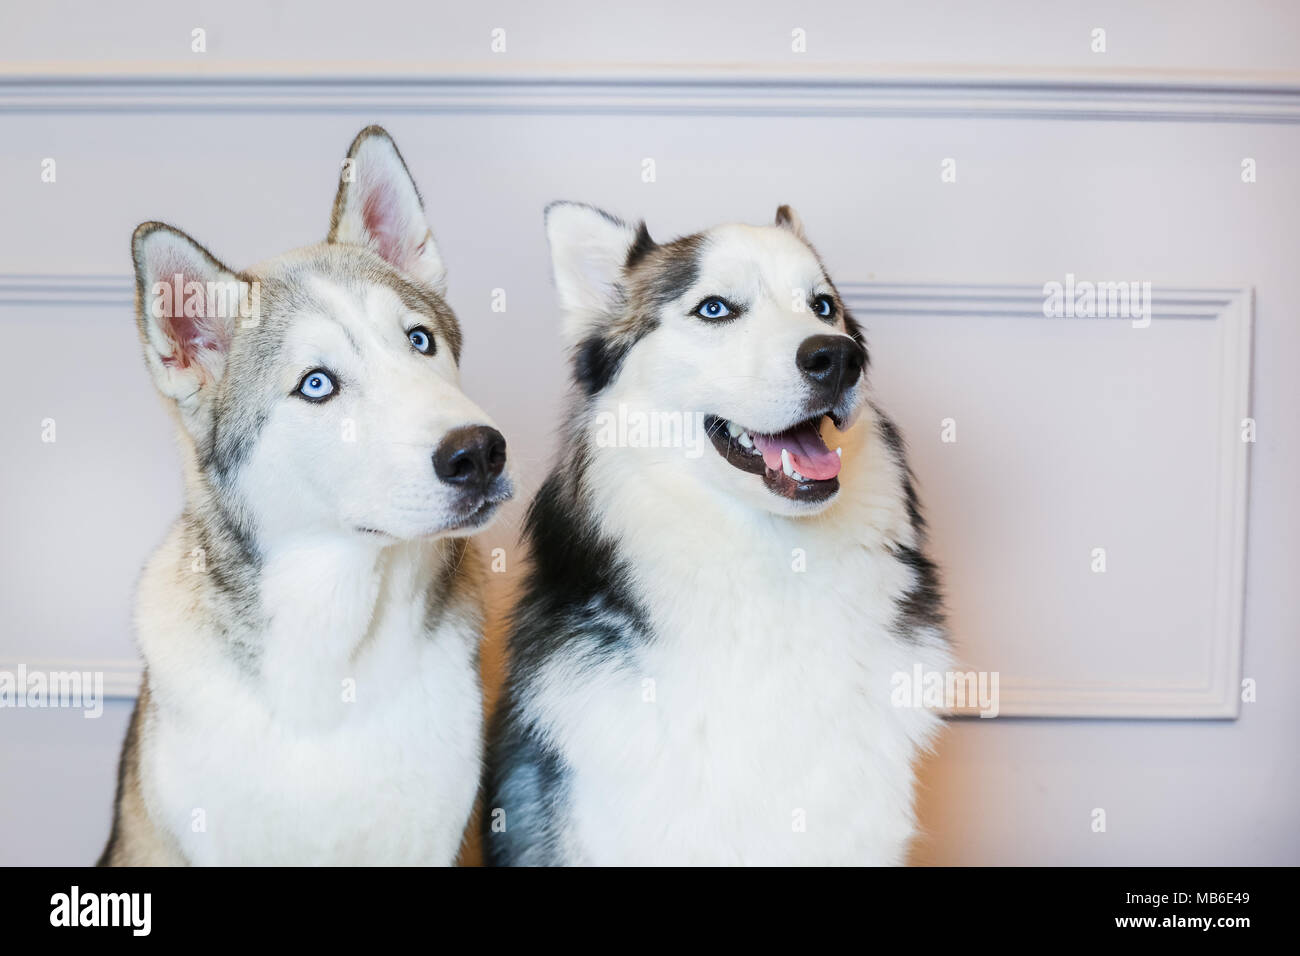 Husky Dogs in a studio with a grey background - Stock Image